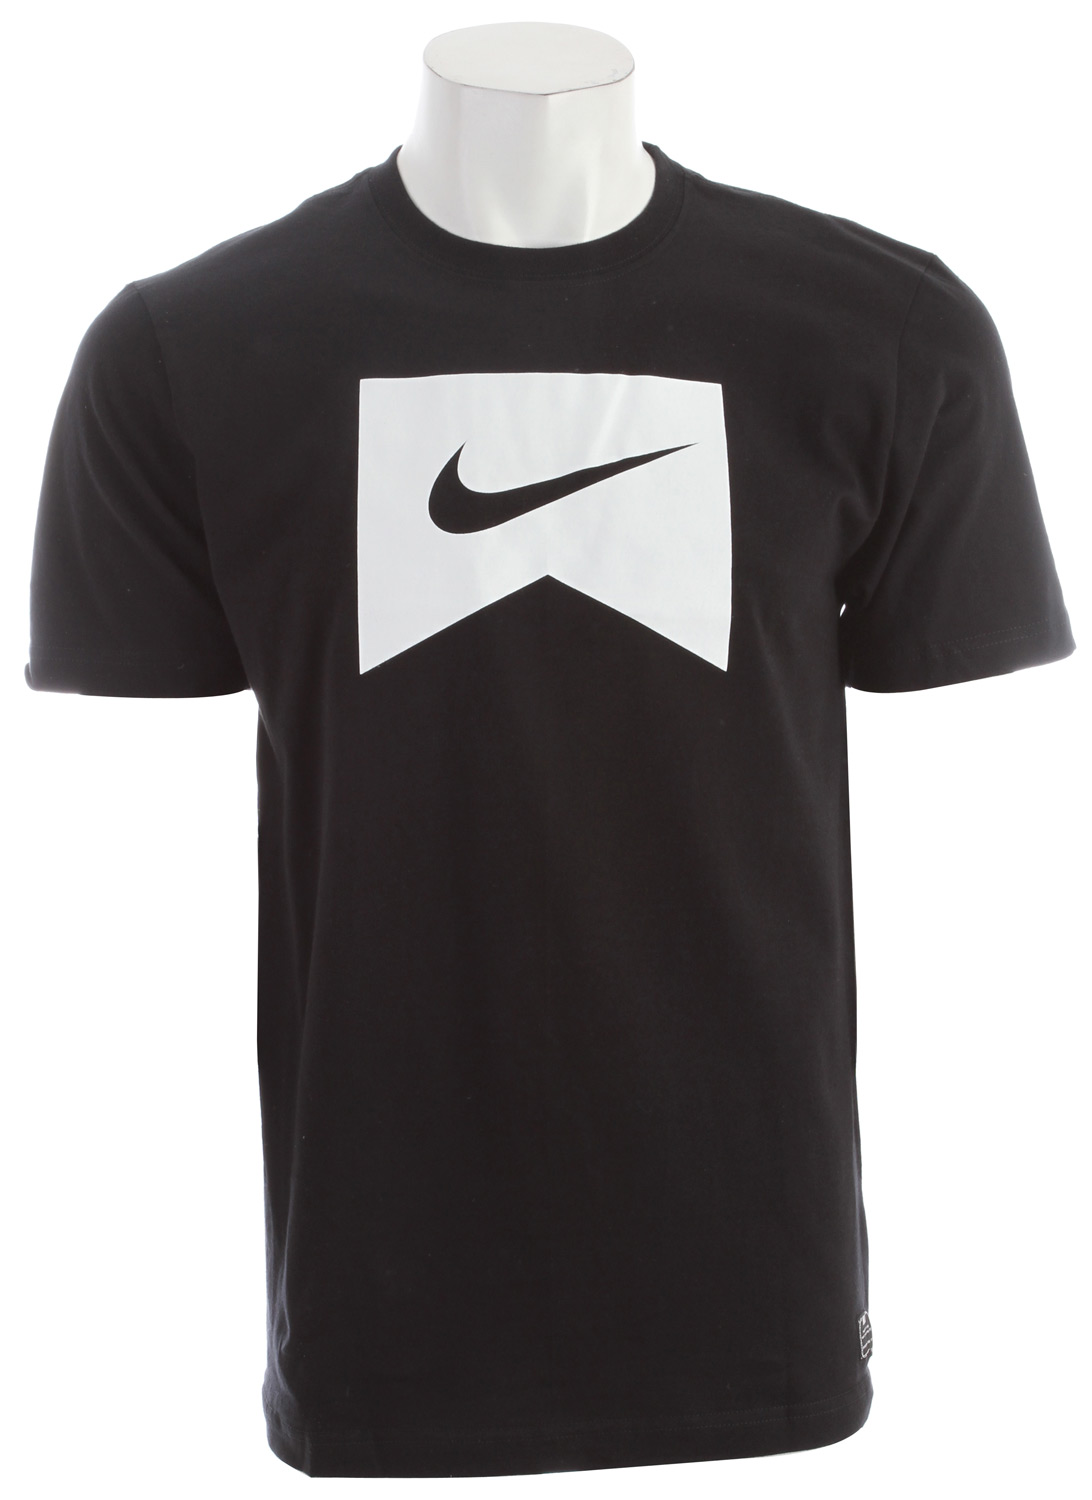 Skateboard Key Features of the Nike Icon T-Shirt: Body: 175g. 100% cotton (10% organic) plain jersey. Rib: 250g. 100% cotton (10% organic). All-purpose cotton tee. Graphic executed with a soft hand screen print. - $21.00